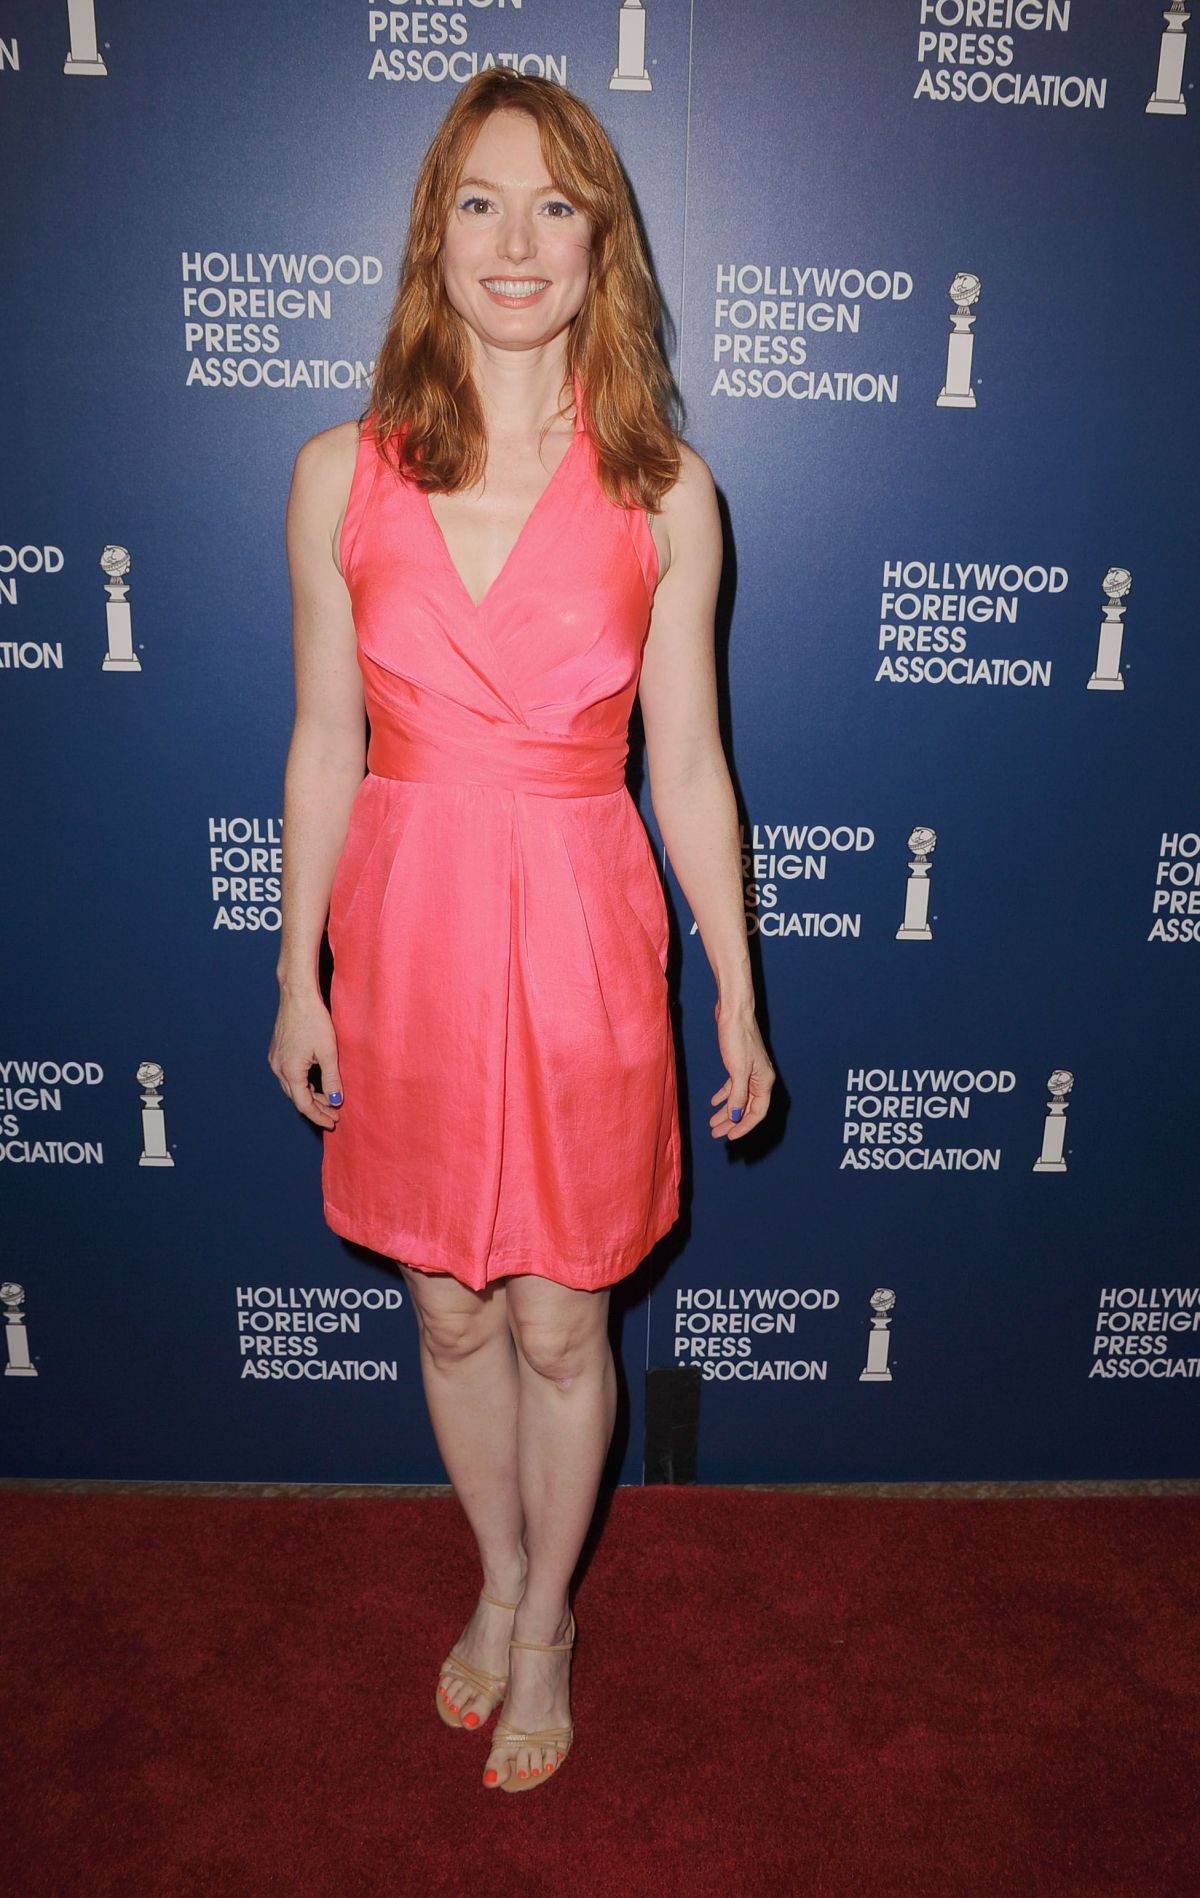 Alicia Witt At The Hollywood Foreign Press Association